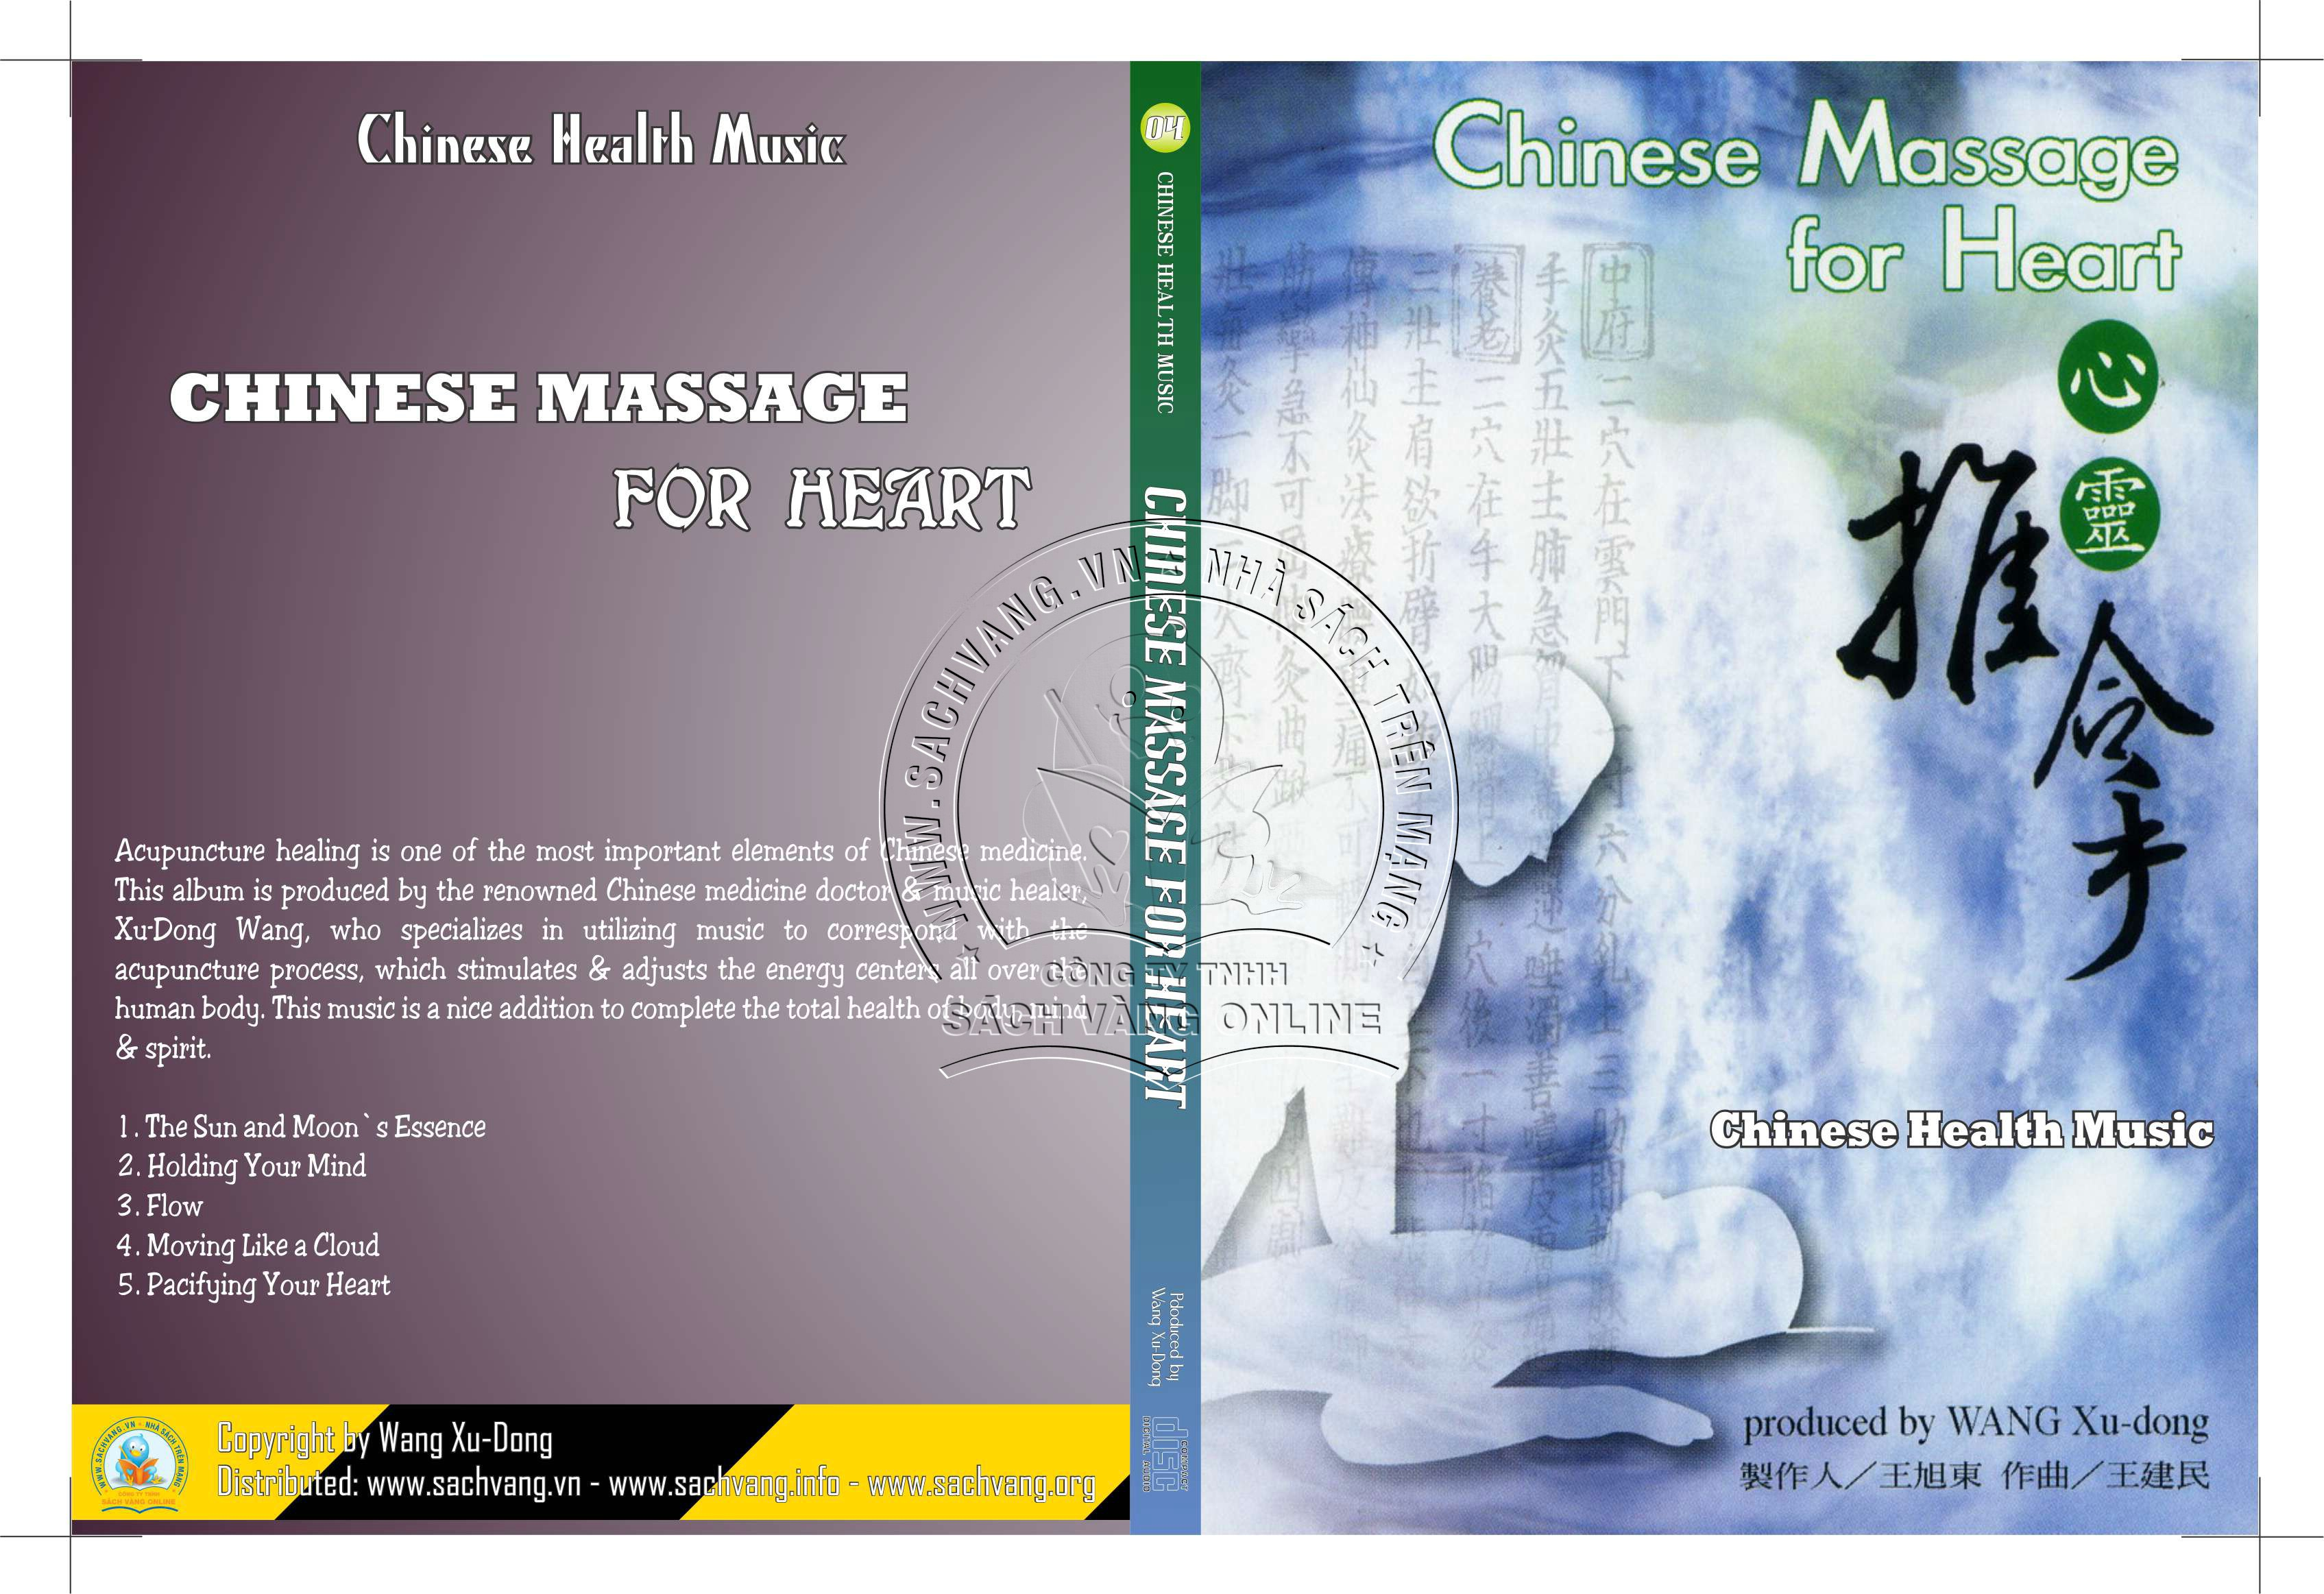 Chinese Health Music - 04 - Chinese Massage for Heart